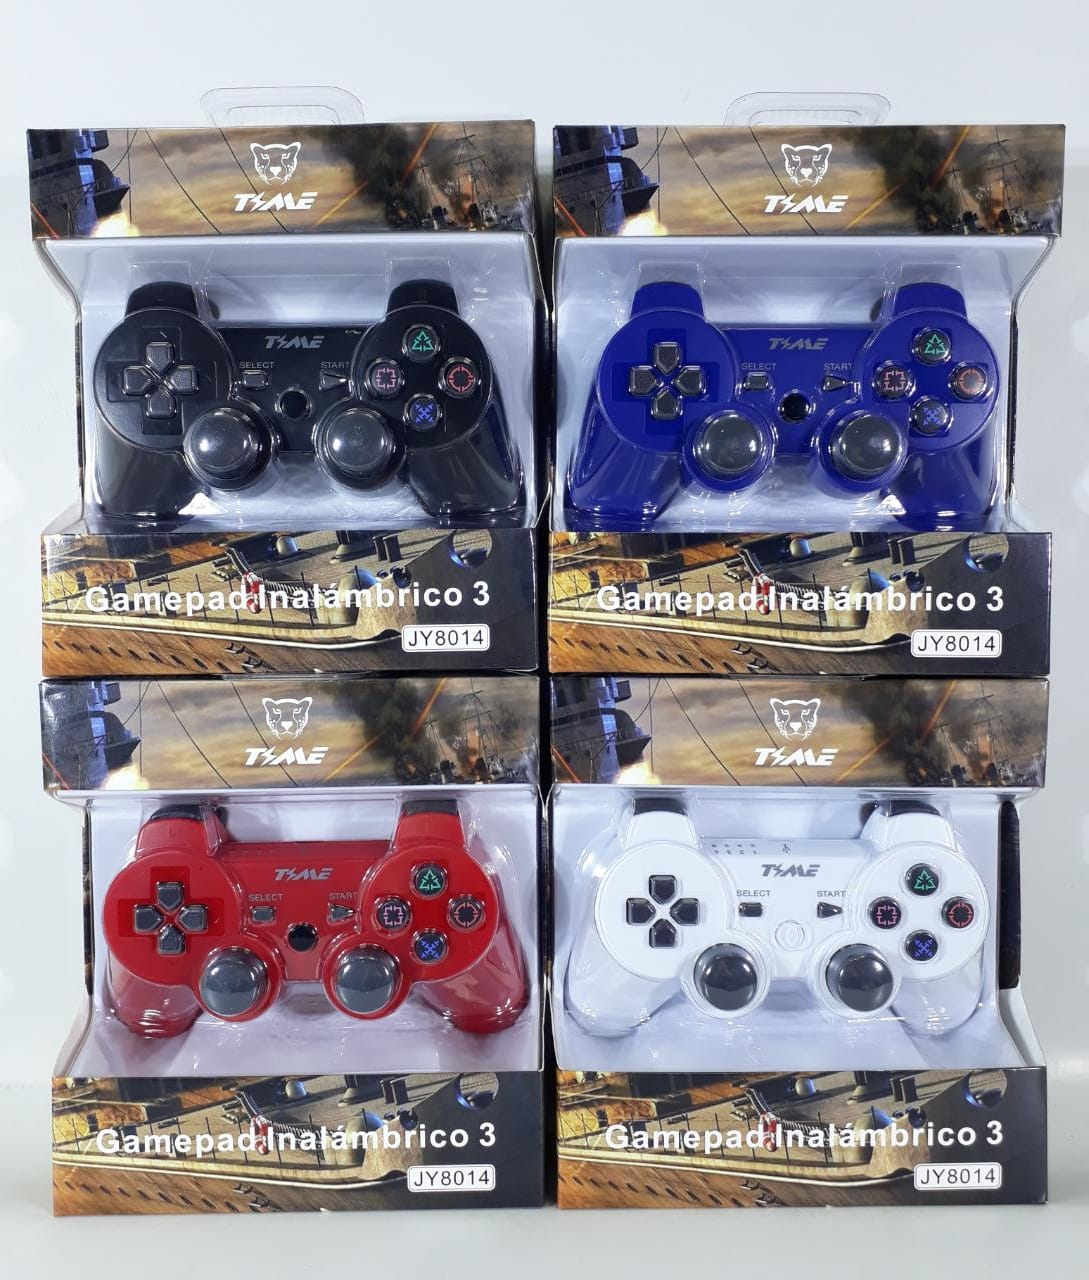 JOYSTICK GAMEPAD PS3 INALAMBRICO COLORES TIME